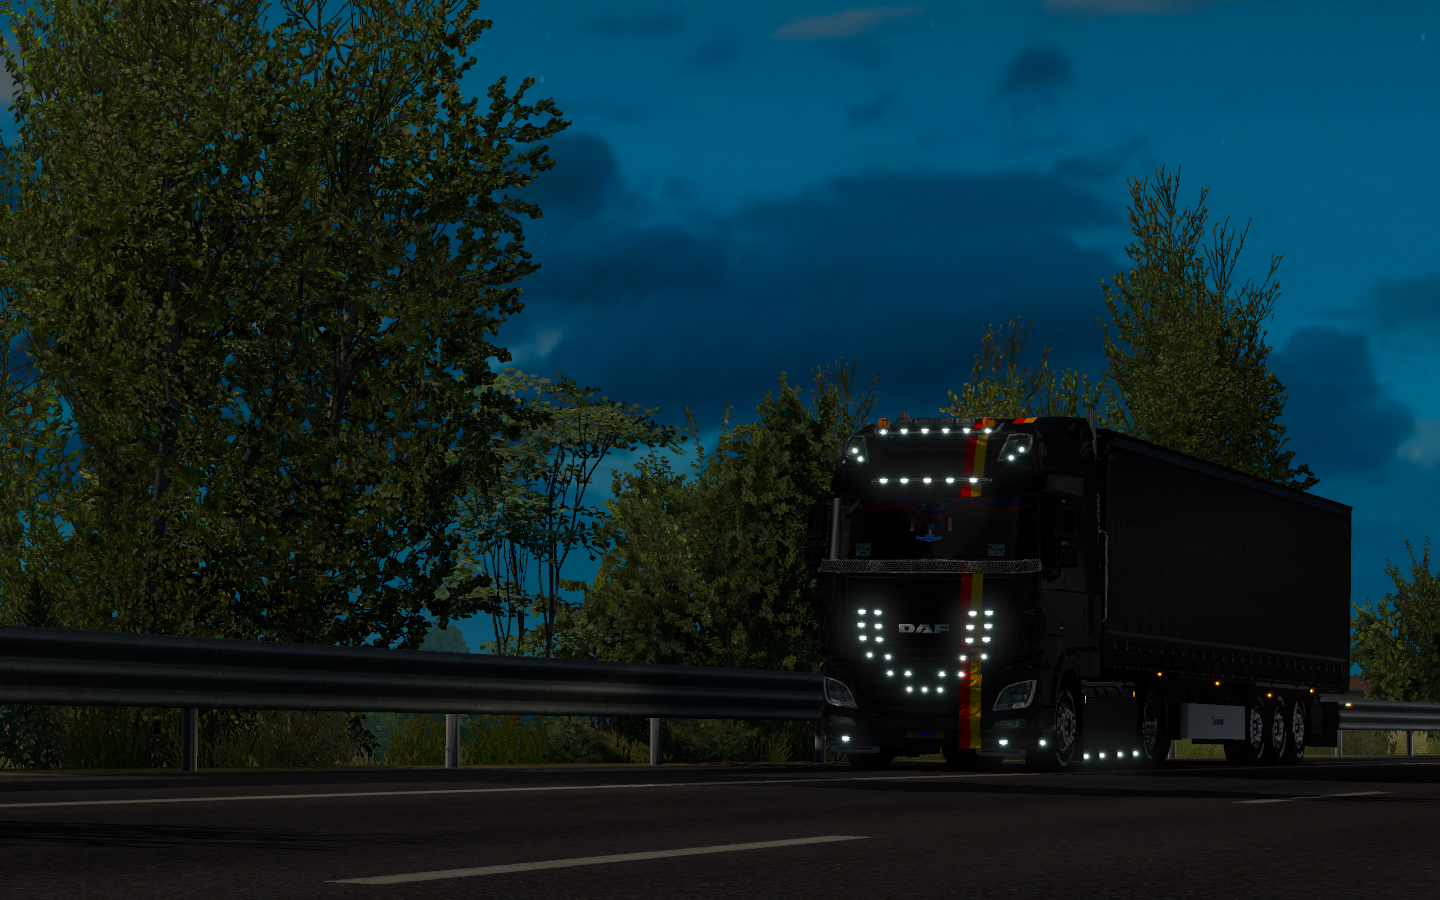 ets2_20190526_150844_00.png